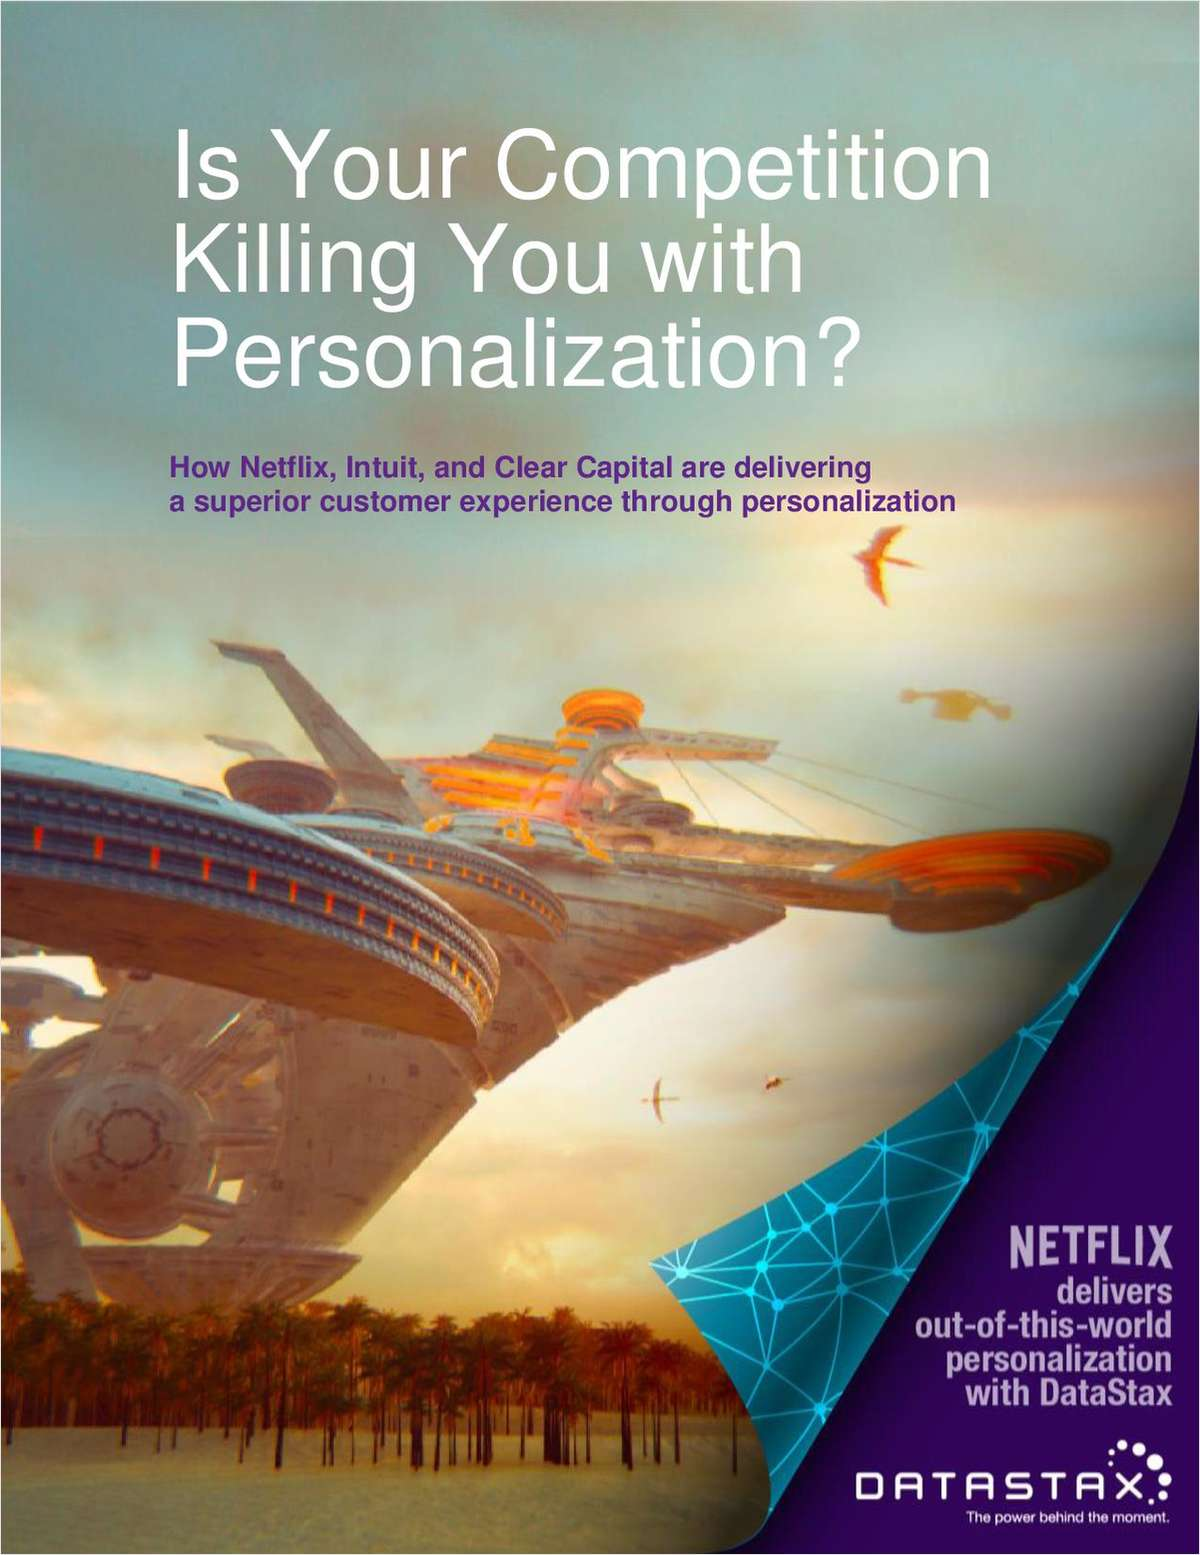 Is Your Competition Killing You with Personalization?